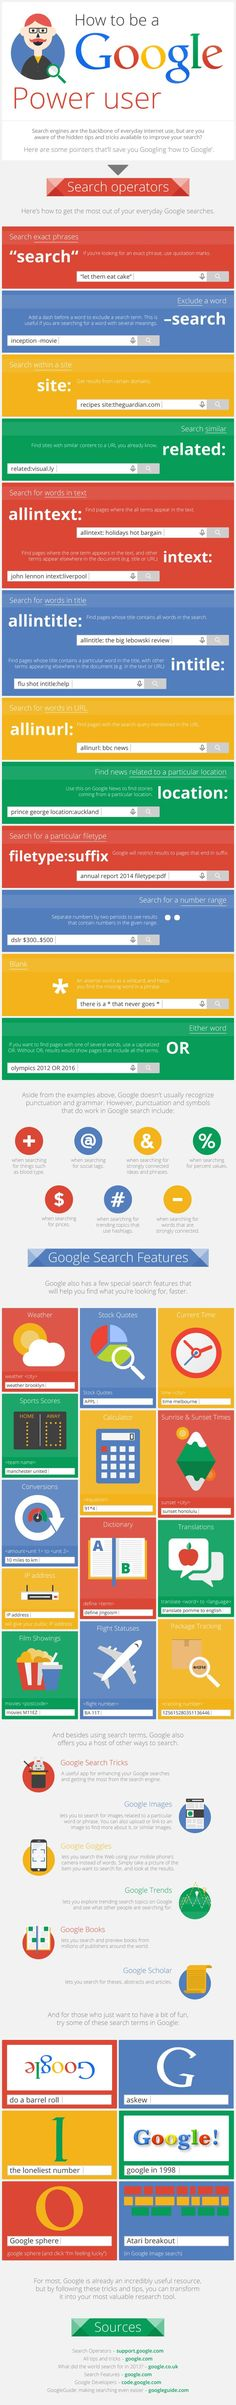 How To Be A Google Power User [Infographic]